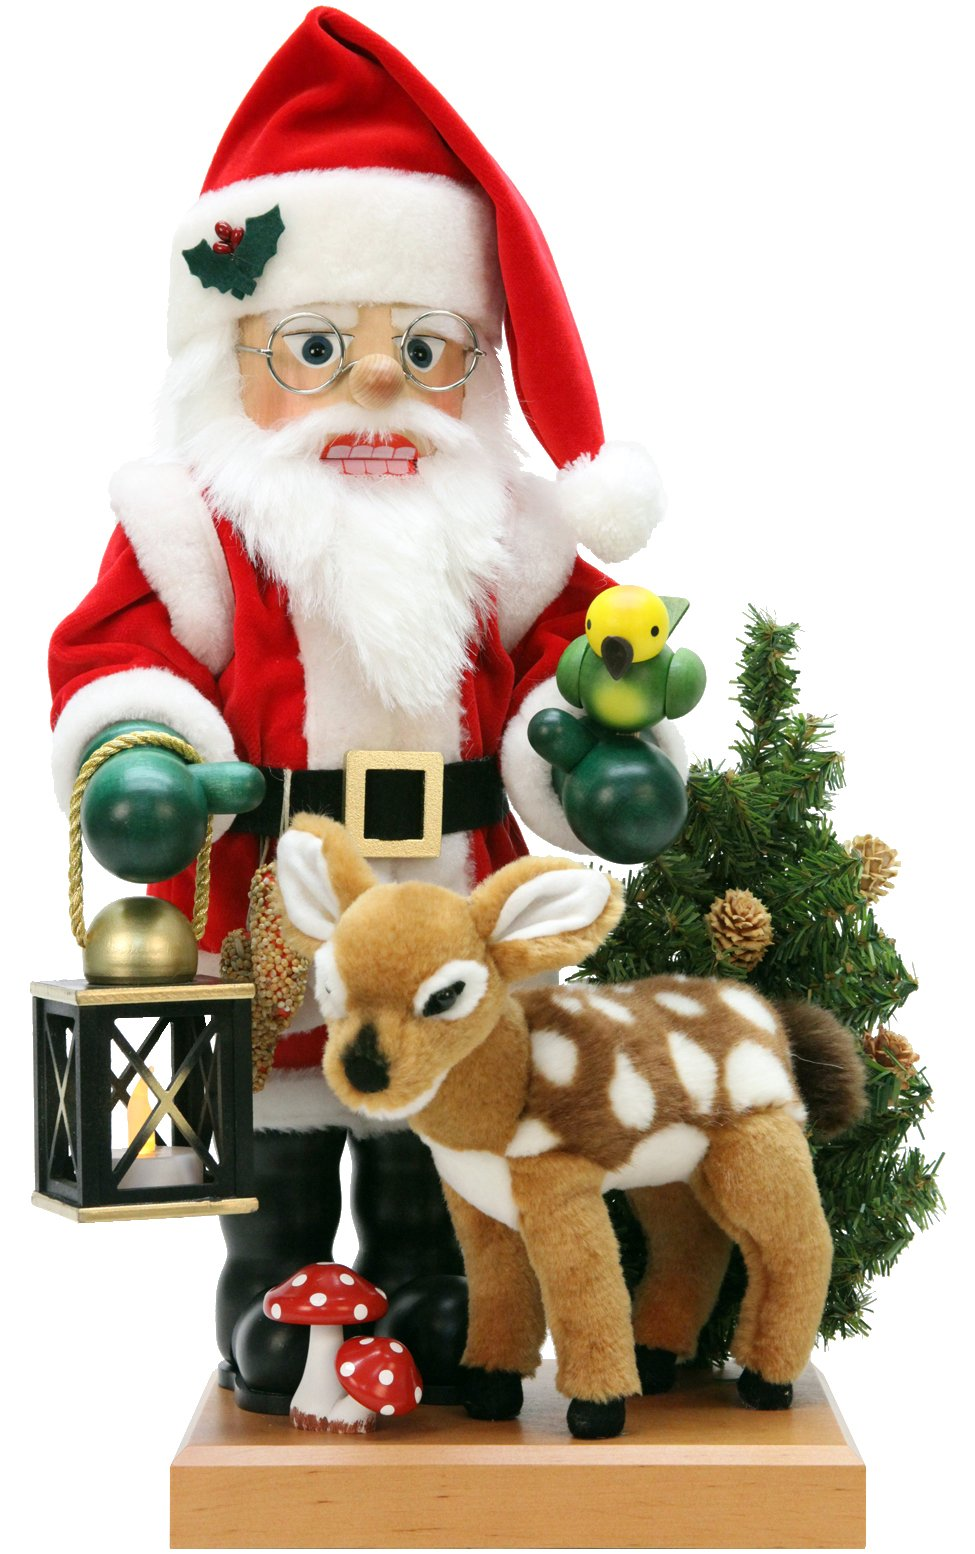 0-476 - Christian Ulbricht Nutcracker - Santa and Bambi - 18''''H x 8.5''''W x 9''''D